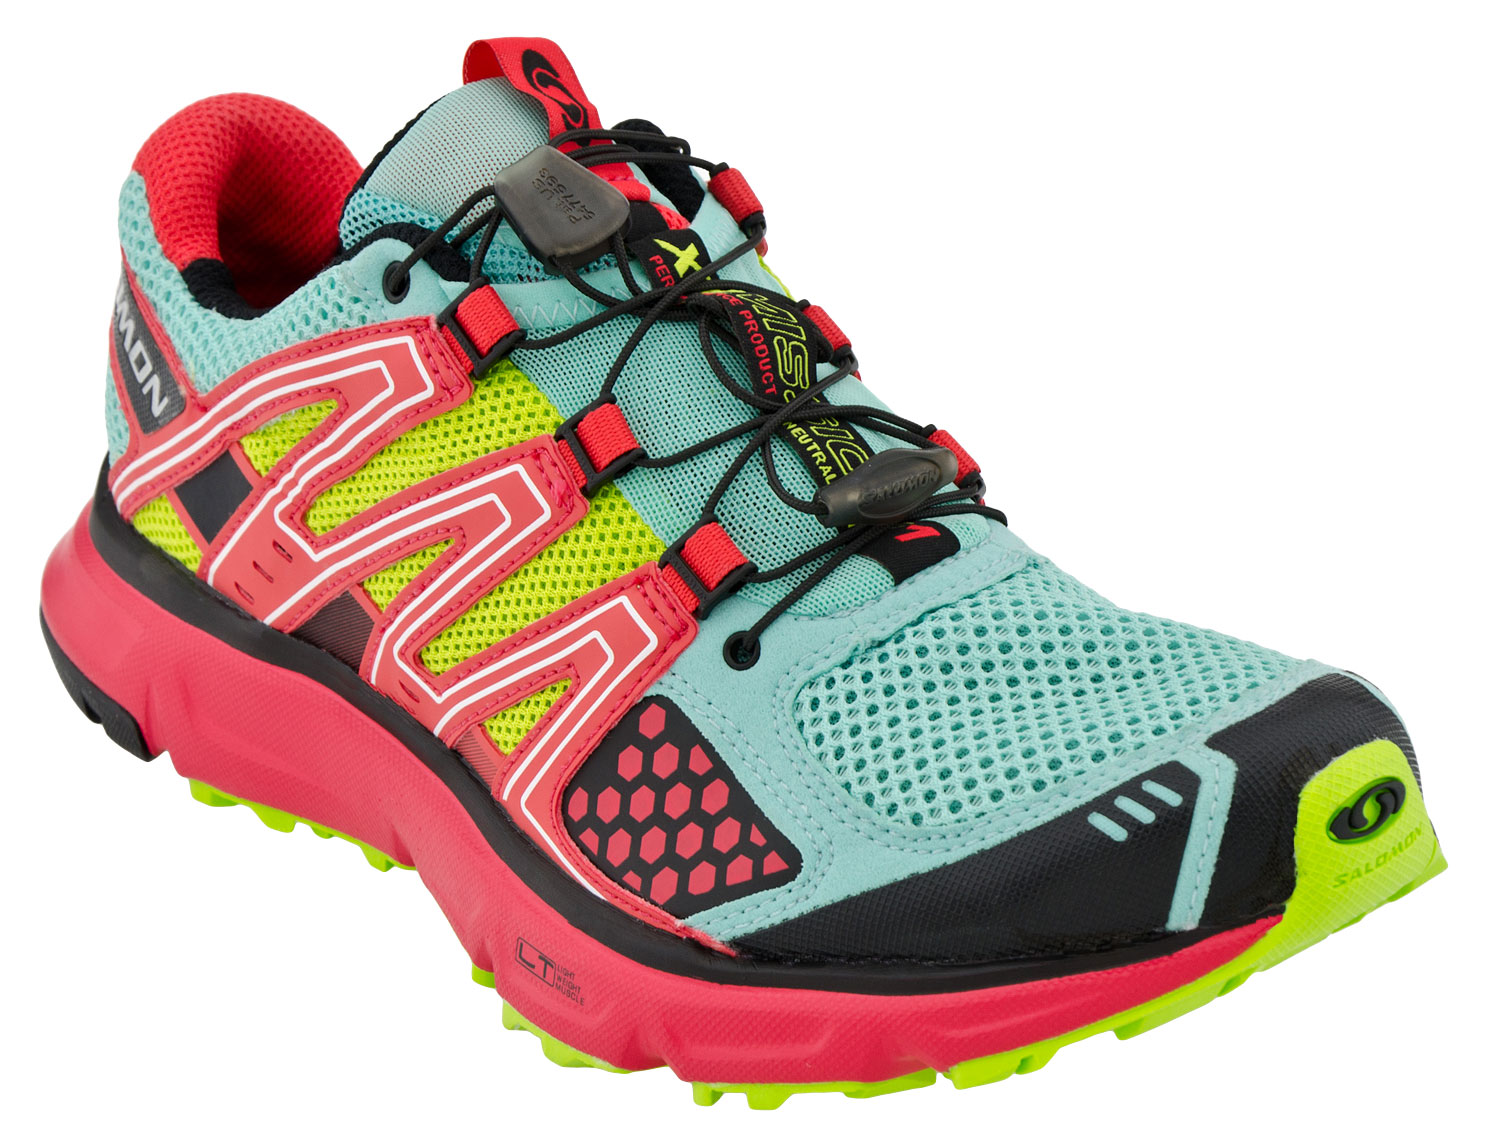 2449ddf70ee0 New Gear- Salomon Women s XR Mission And The Skin Pro 3